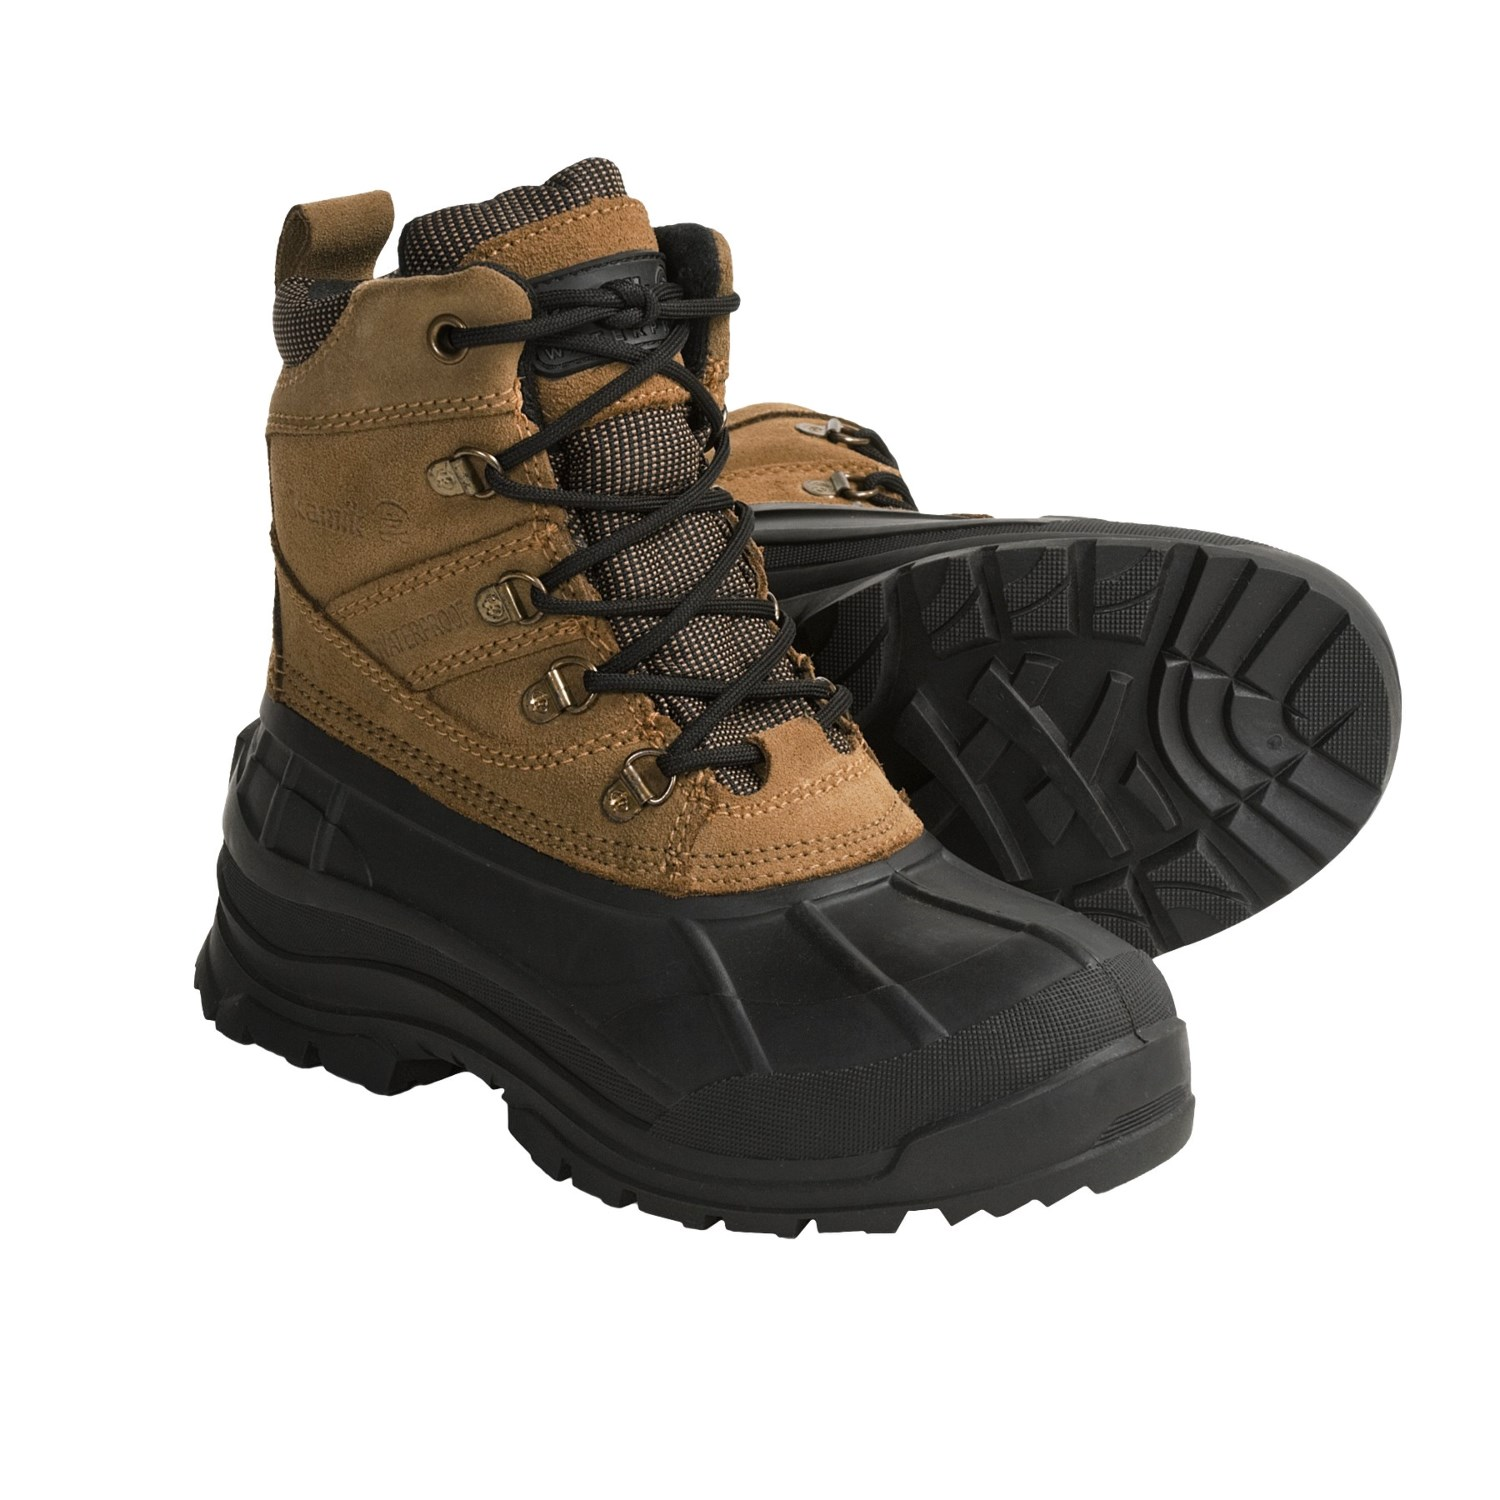 And Snow Boots Waterproof Insulated For Women Pictures to Pin on ...